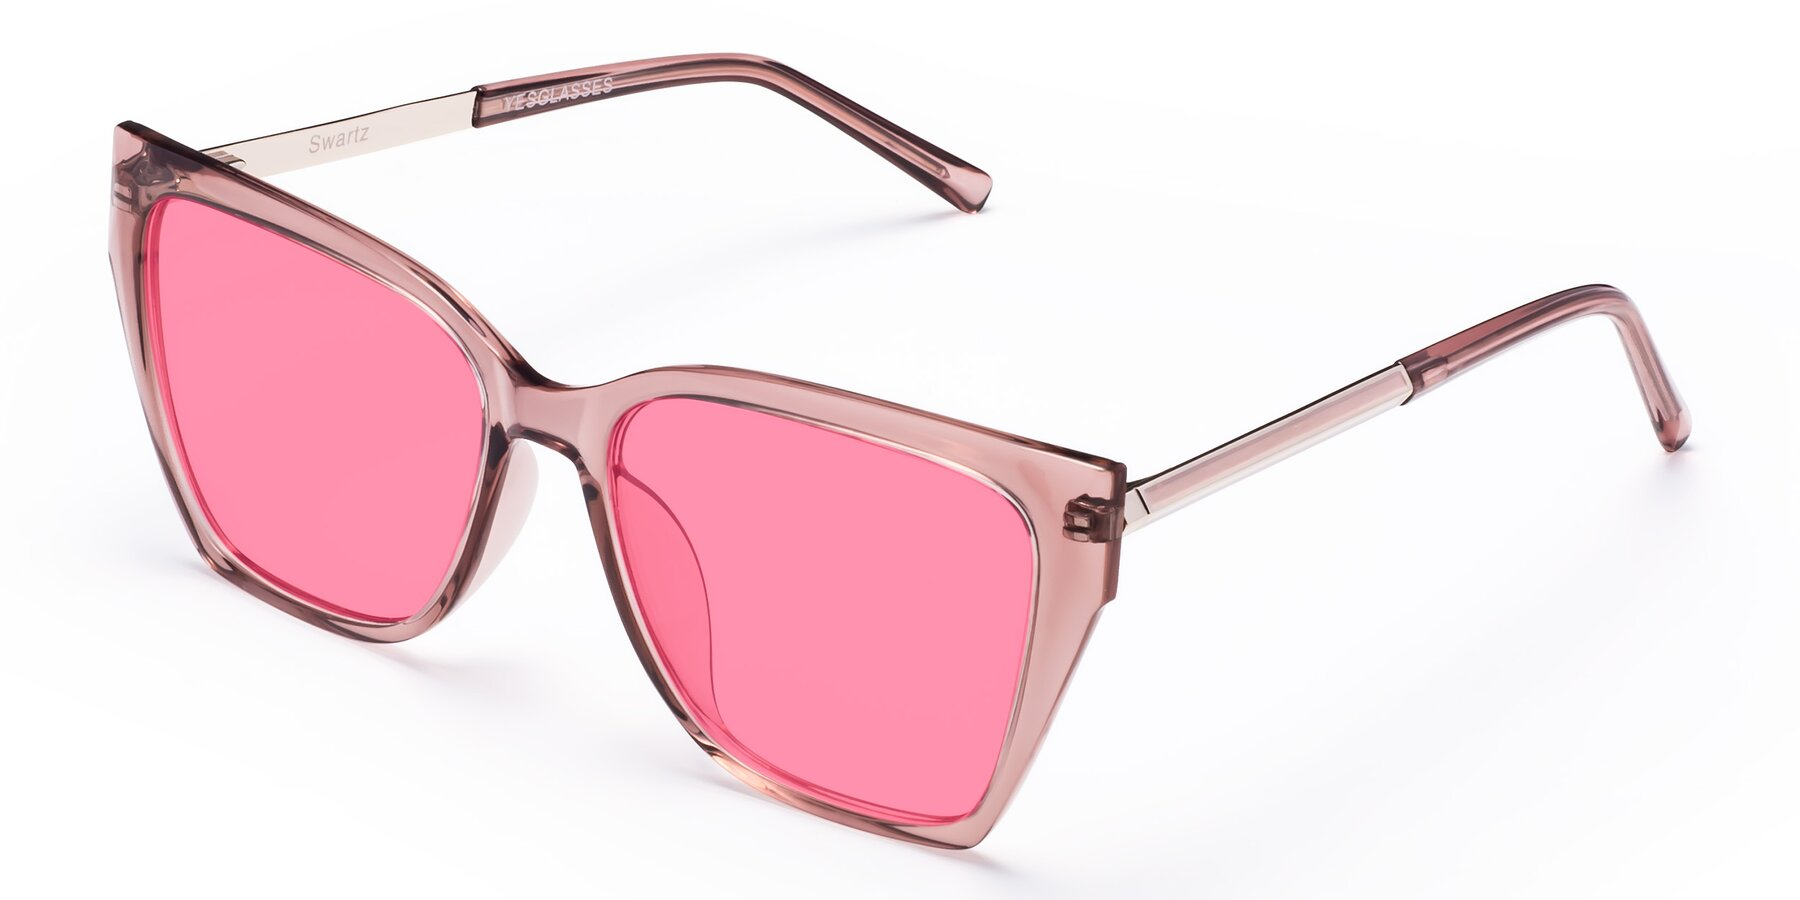 Angle of Swartz in Grape with Pink Tinted Lenses